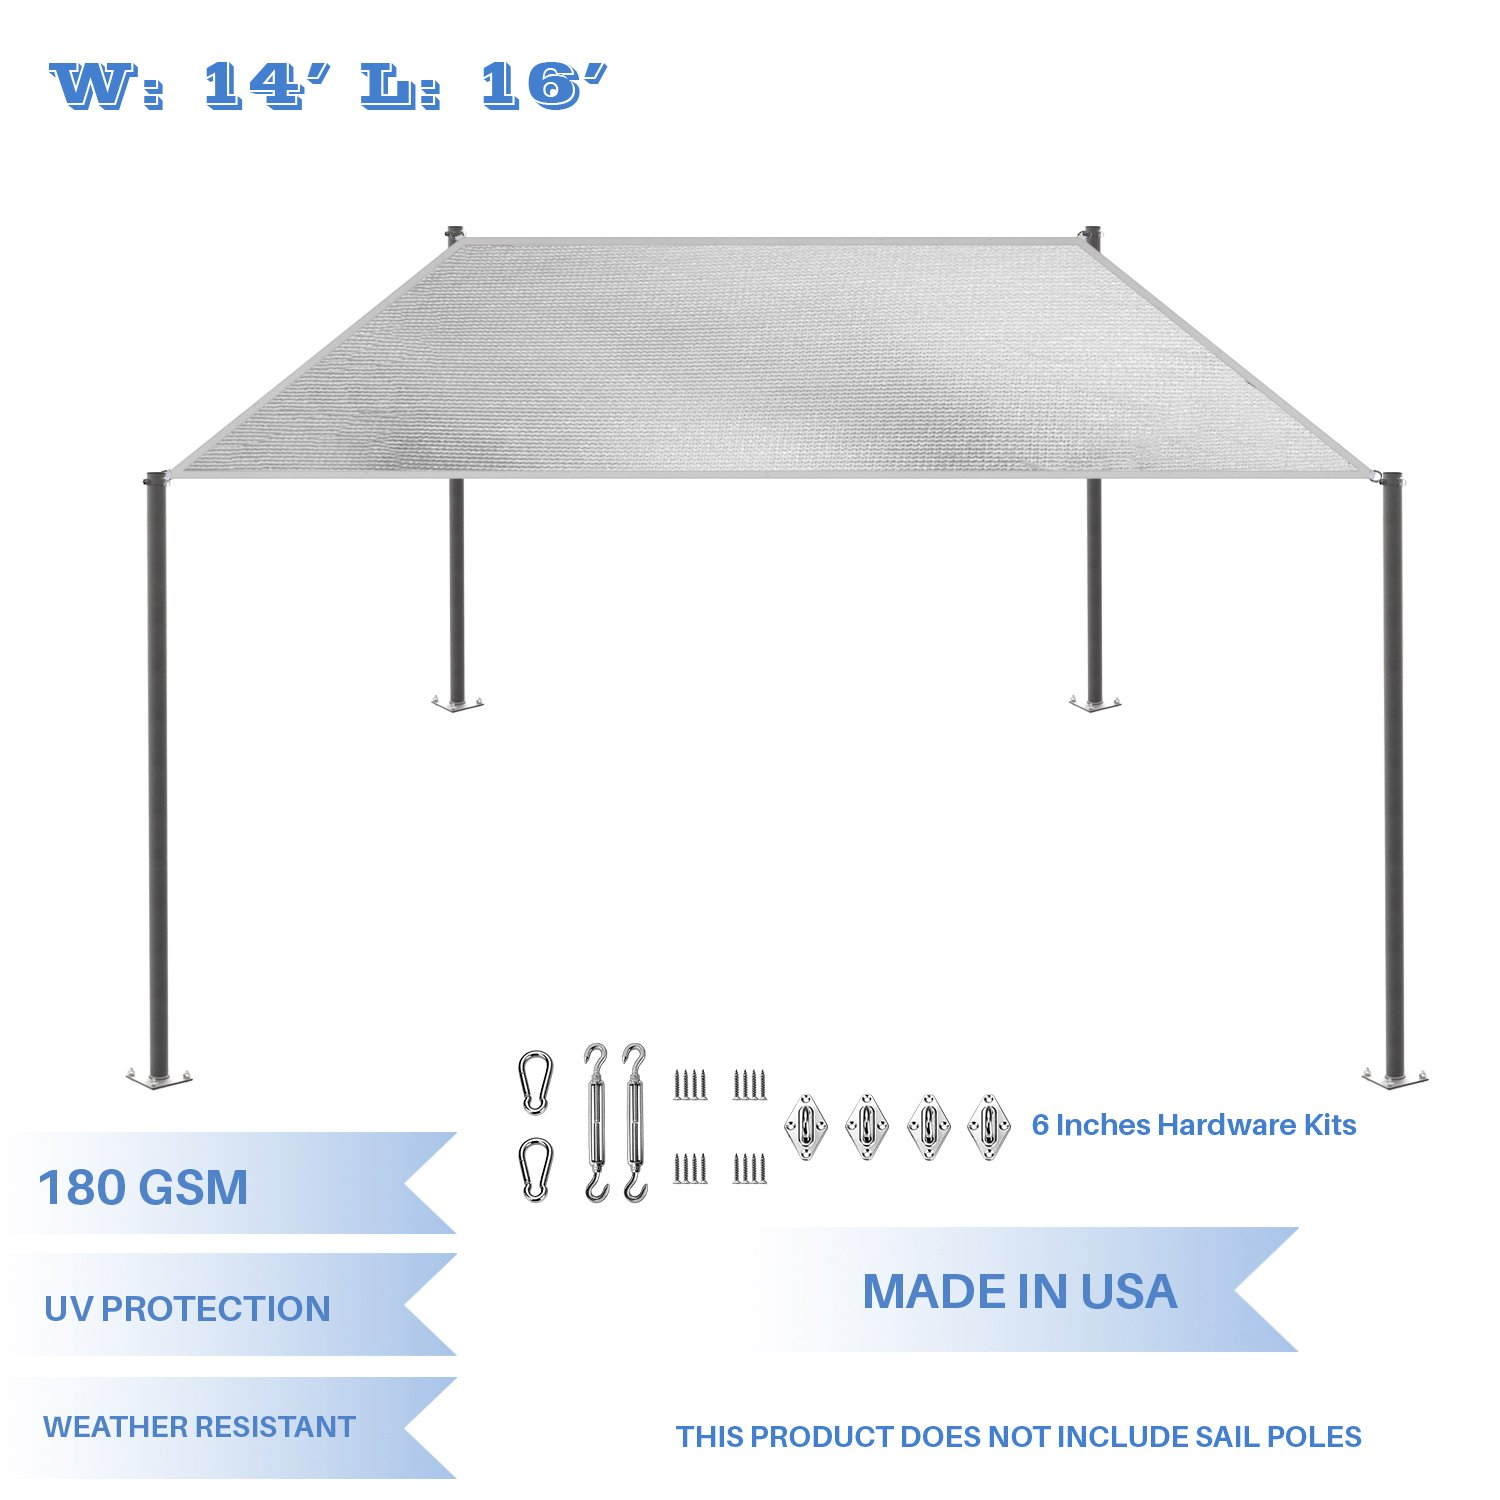 E K Sunrise 14 x 16 Light Gray Rectangle Sun Shade Sail with Stainless Steel Hardware Kit Outdoor Shade Cloth UV Block Fabric,Straight Edge-Customized